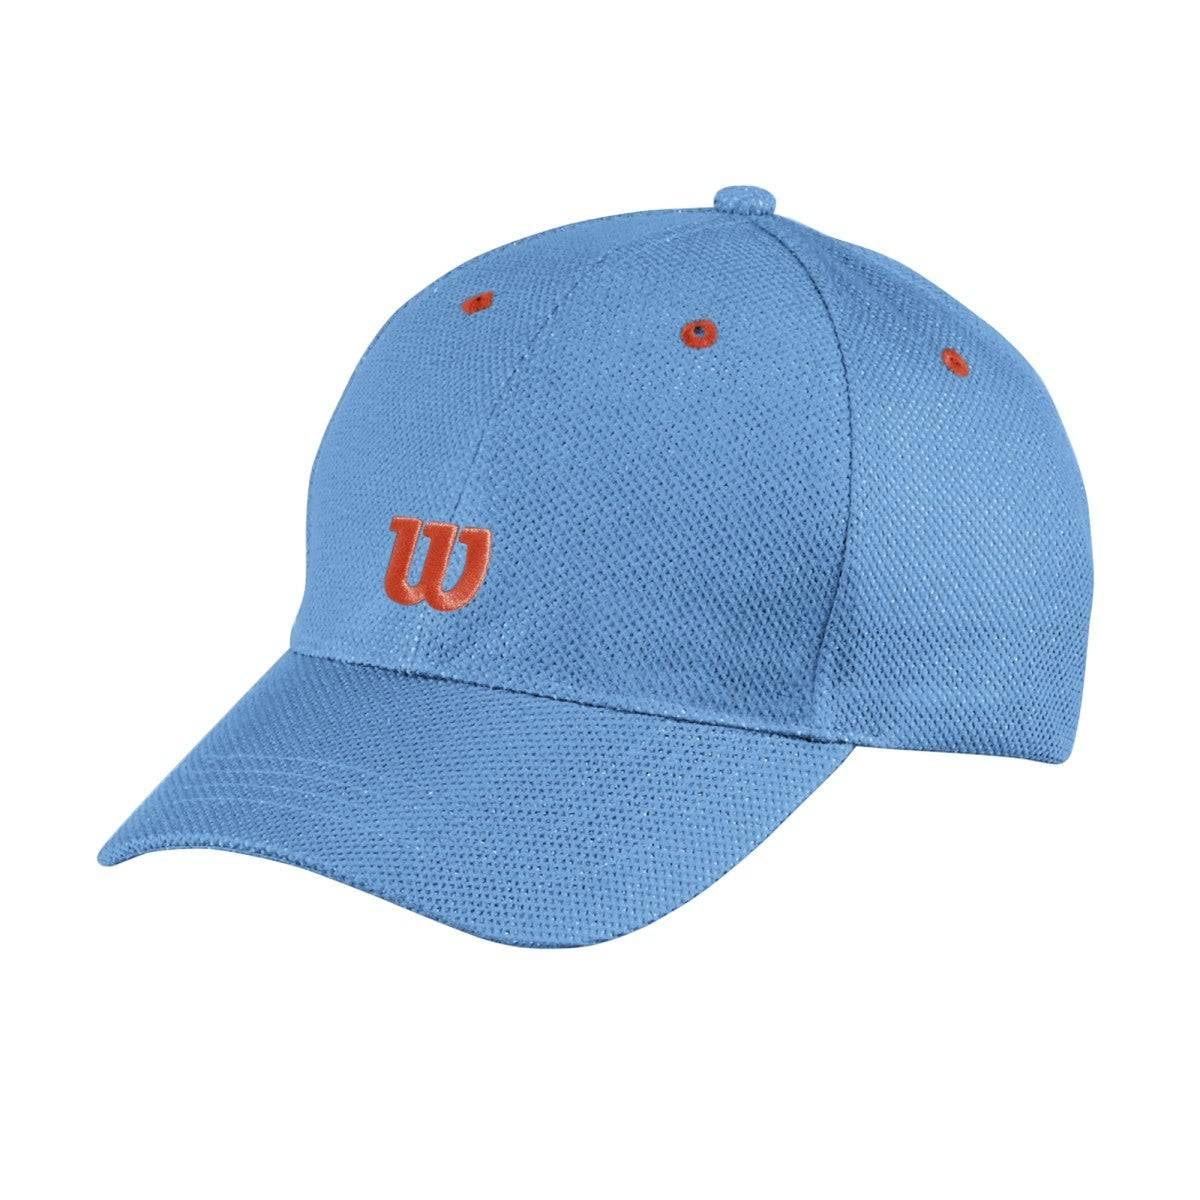 Wilson Youth Tour W Cap in Coastal Blue - Size: One Size Fits Most  - Unisex - Coastal Blue - Size: One Size Fits Most